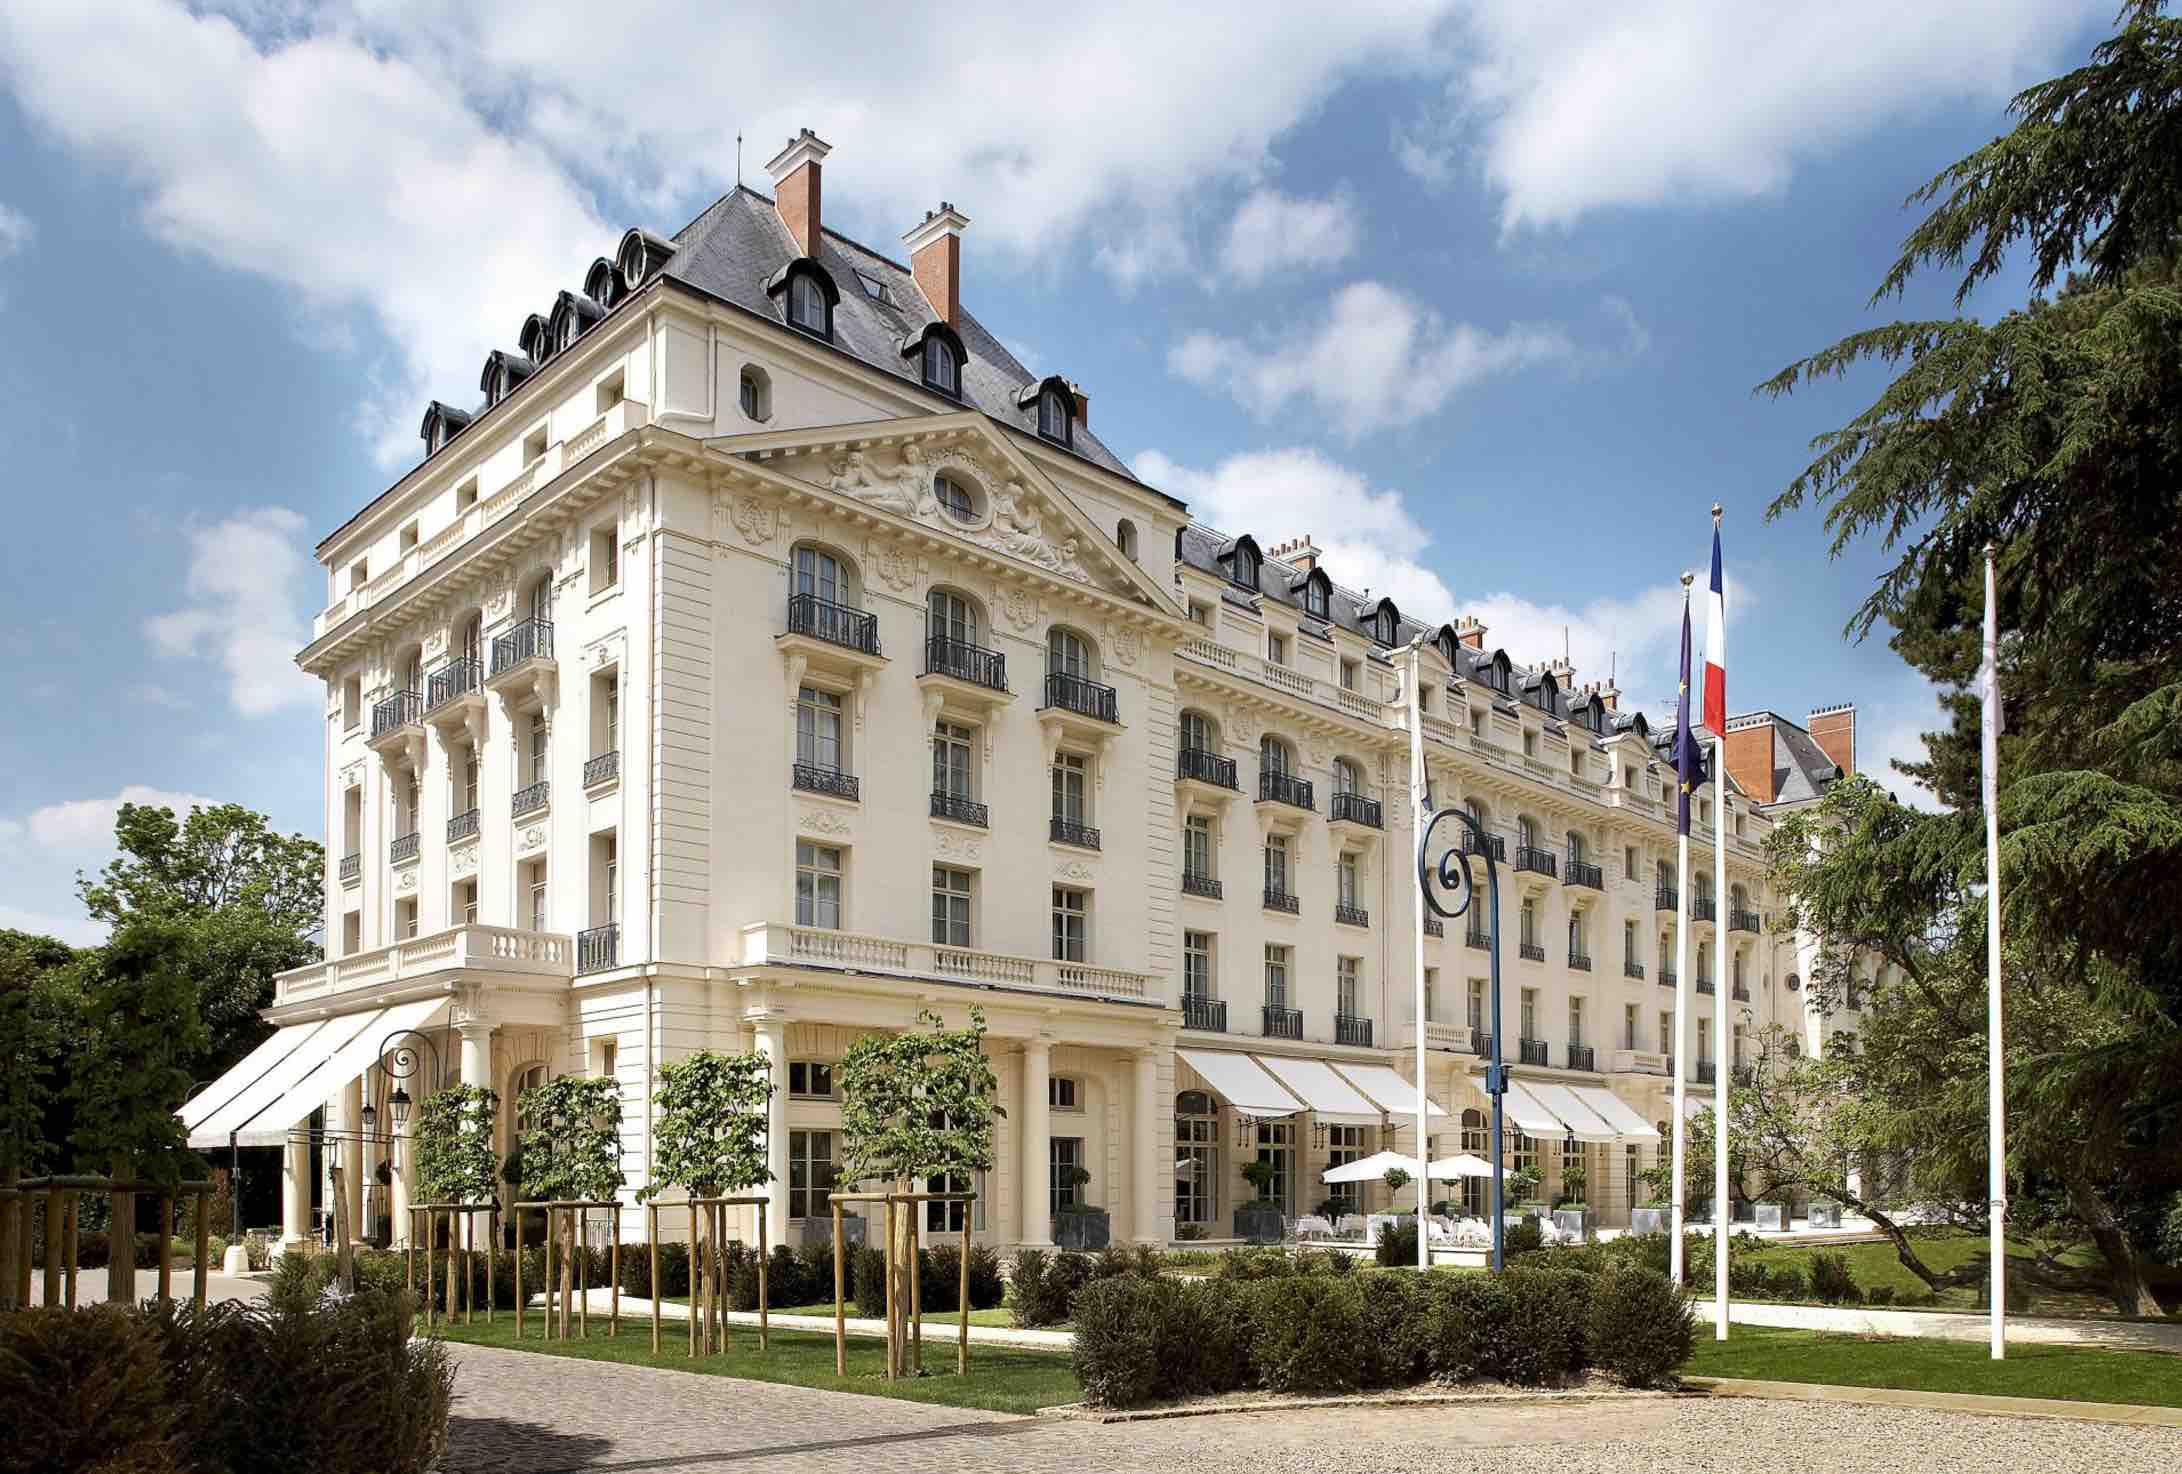 Trianon Palace, Paris - AspirantSG